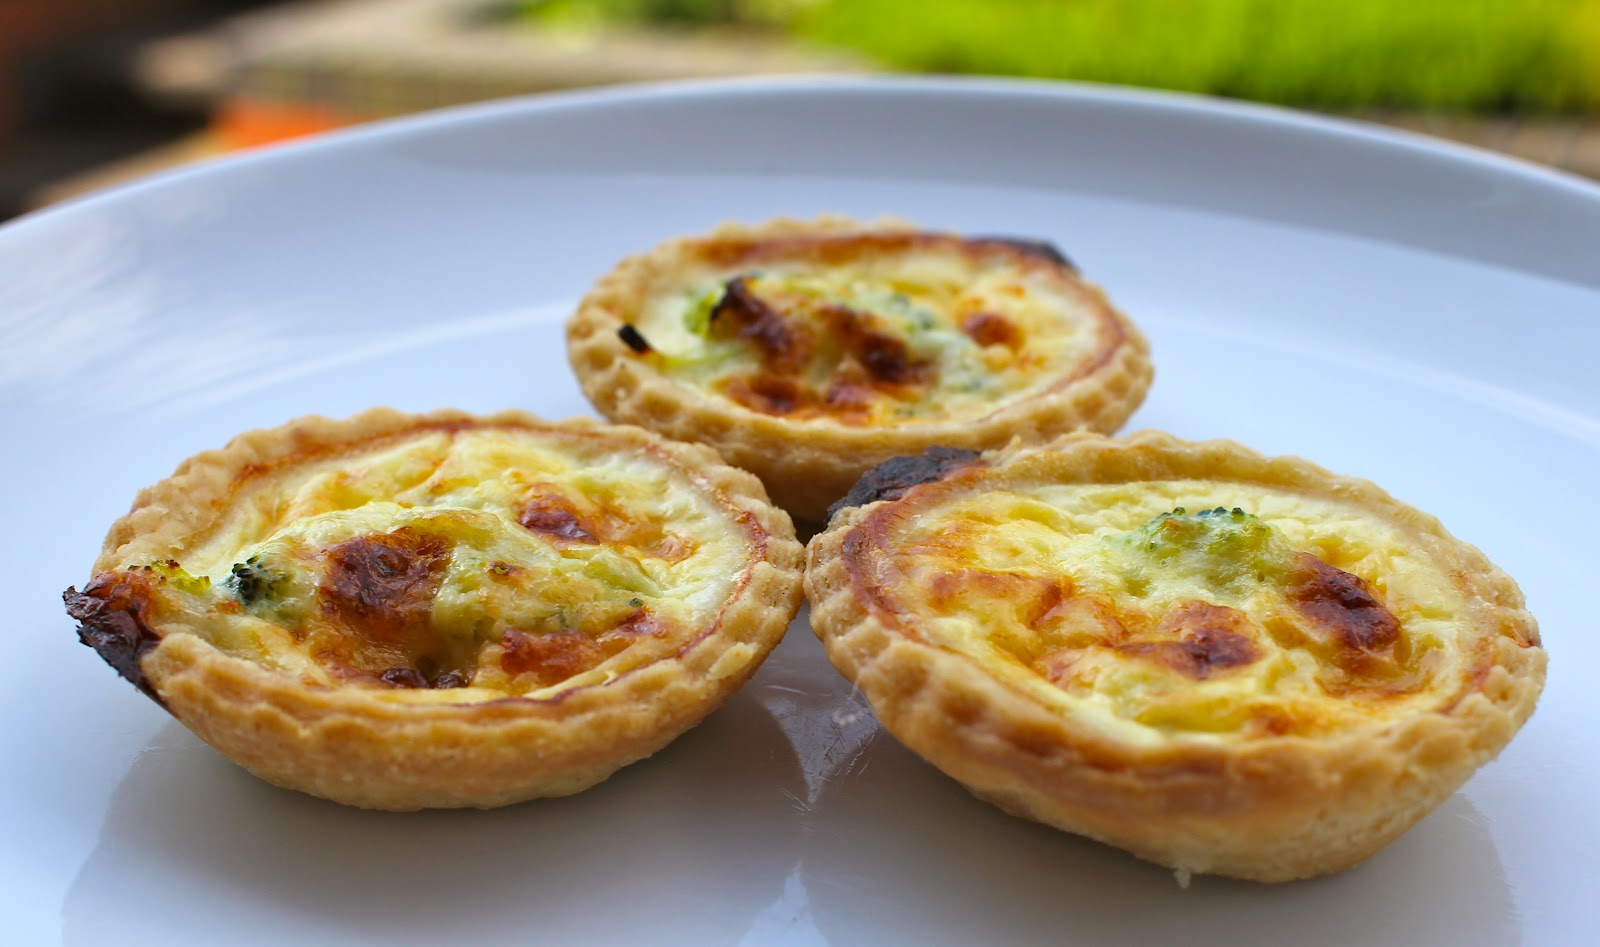 Mamacook broccoli and cheddar mini quiches for the whole family